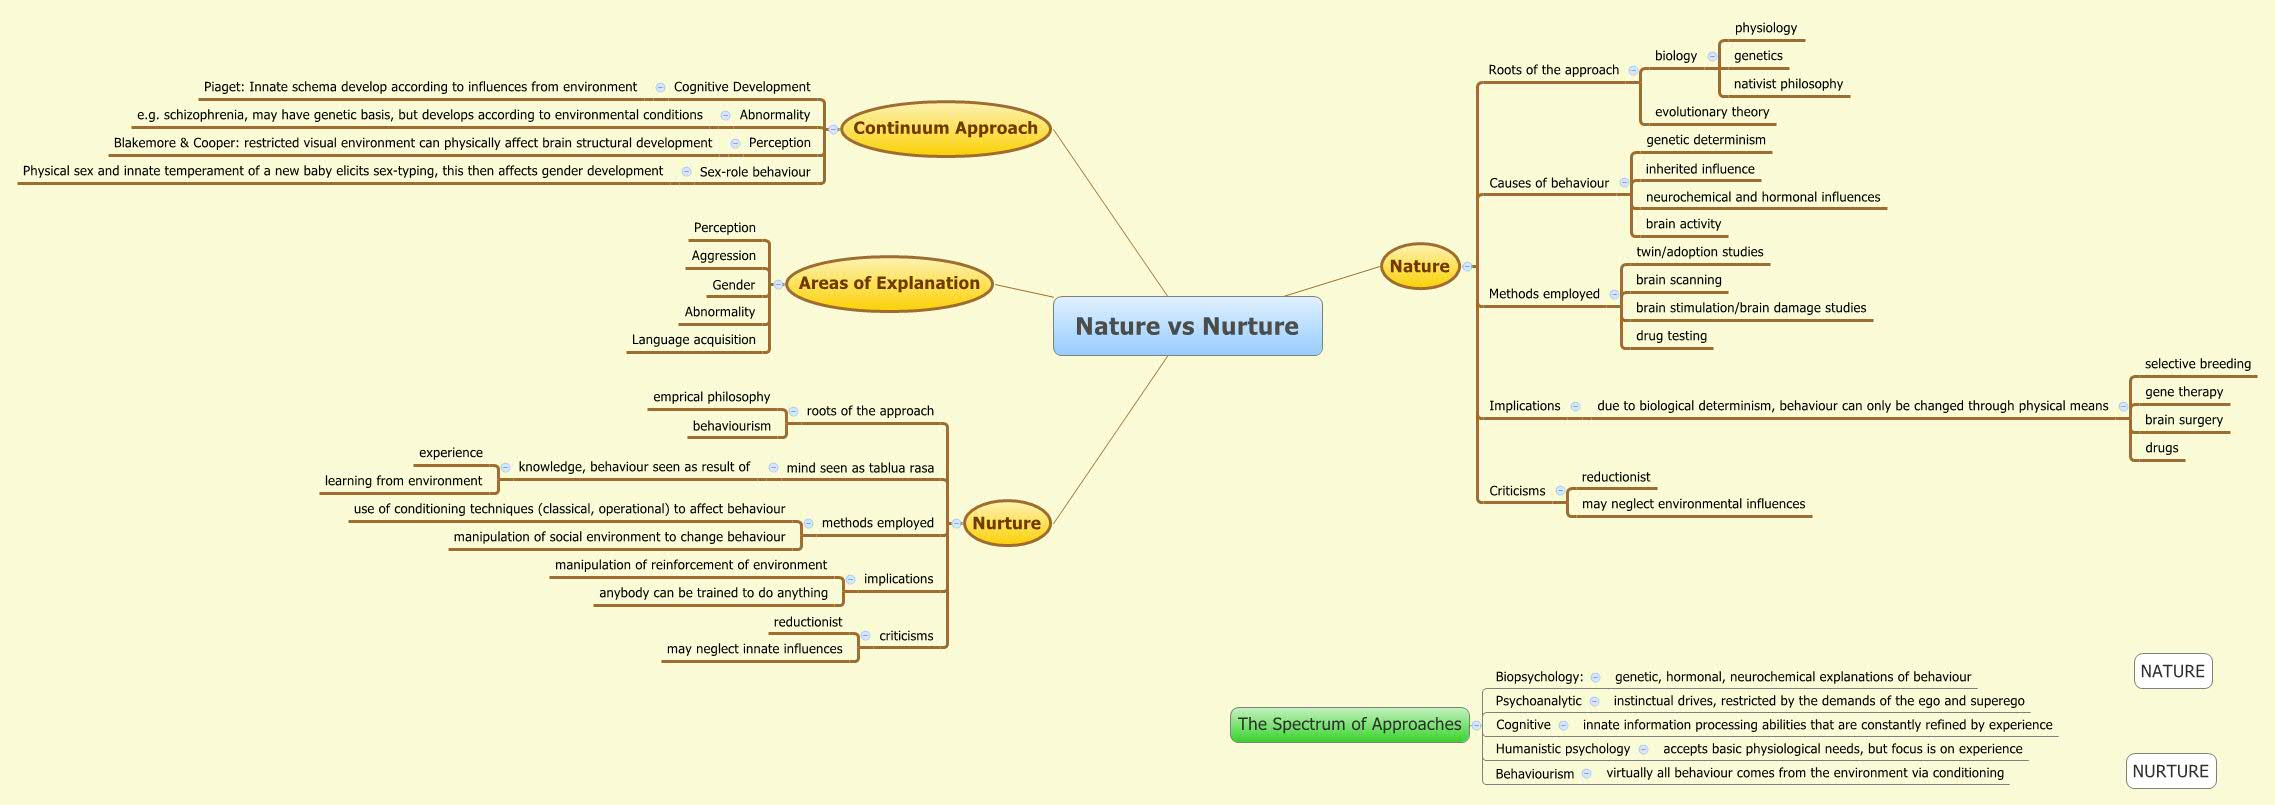 the nature versus nurture debate 2 essay 3 nature vs nurture articles favoring nature pro-nature article 1: nature vs nurture: new science stirs debate this article, and its related video, discusses how biology and environment interact with each other to help influence a person's development.